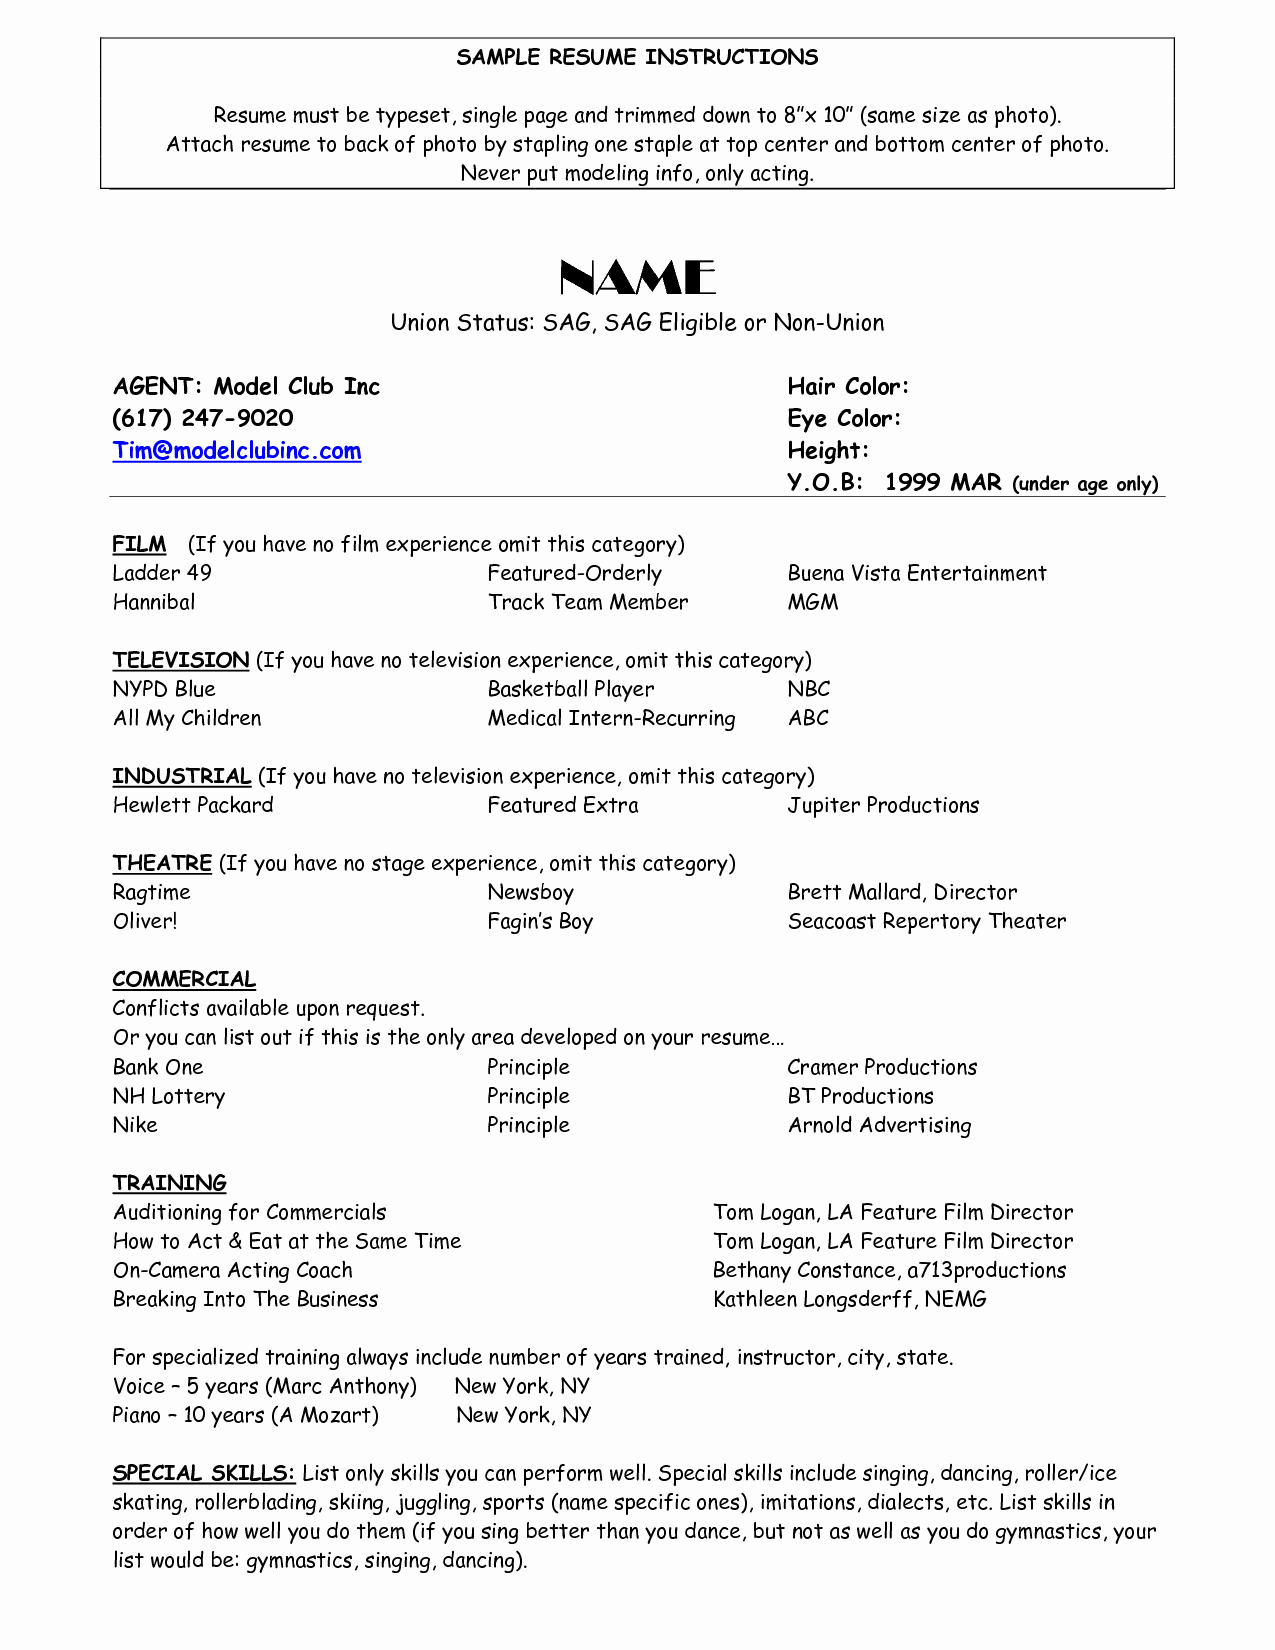 Child Actor Resume Template Beautiful Resume for Child Actor Scope Of Work Template